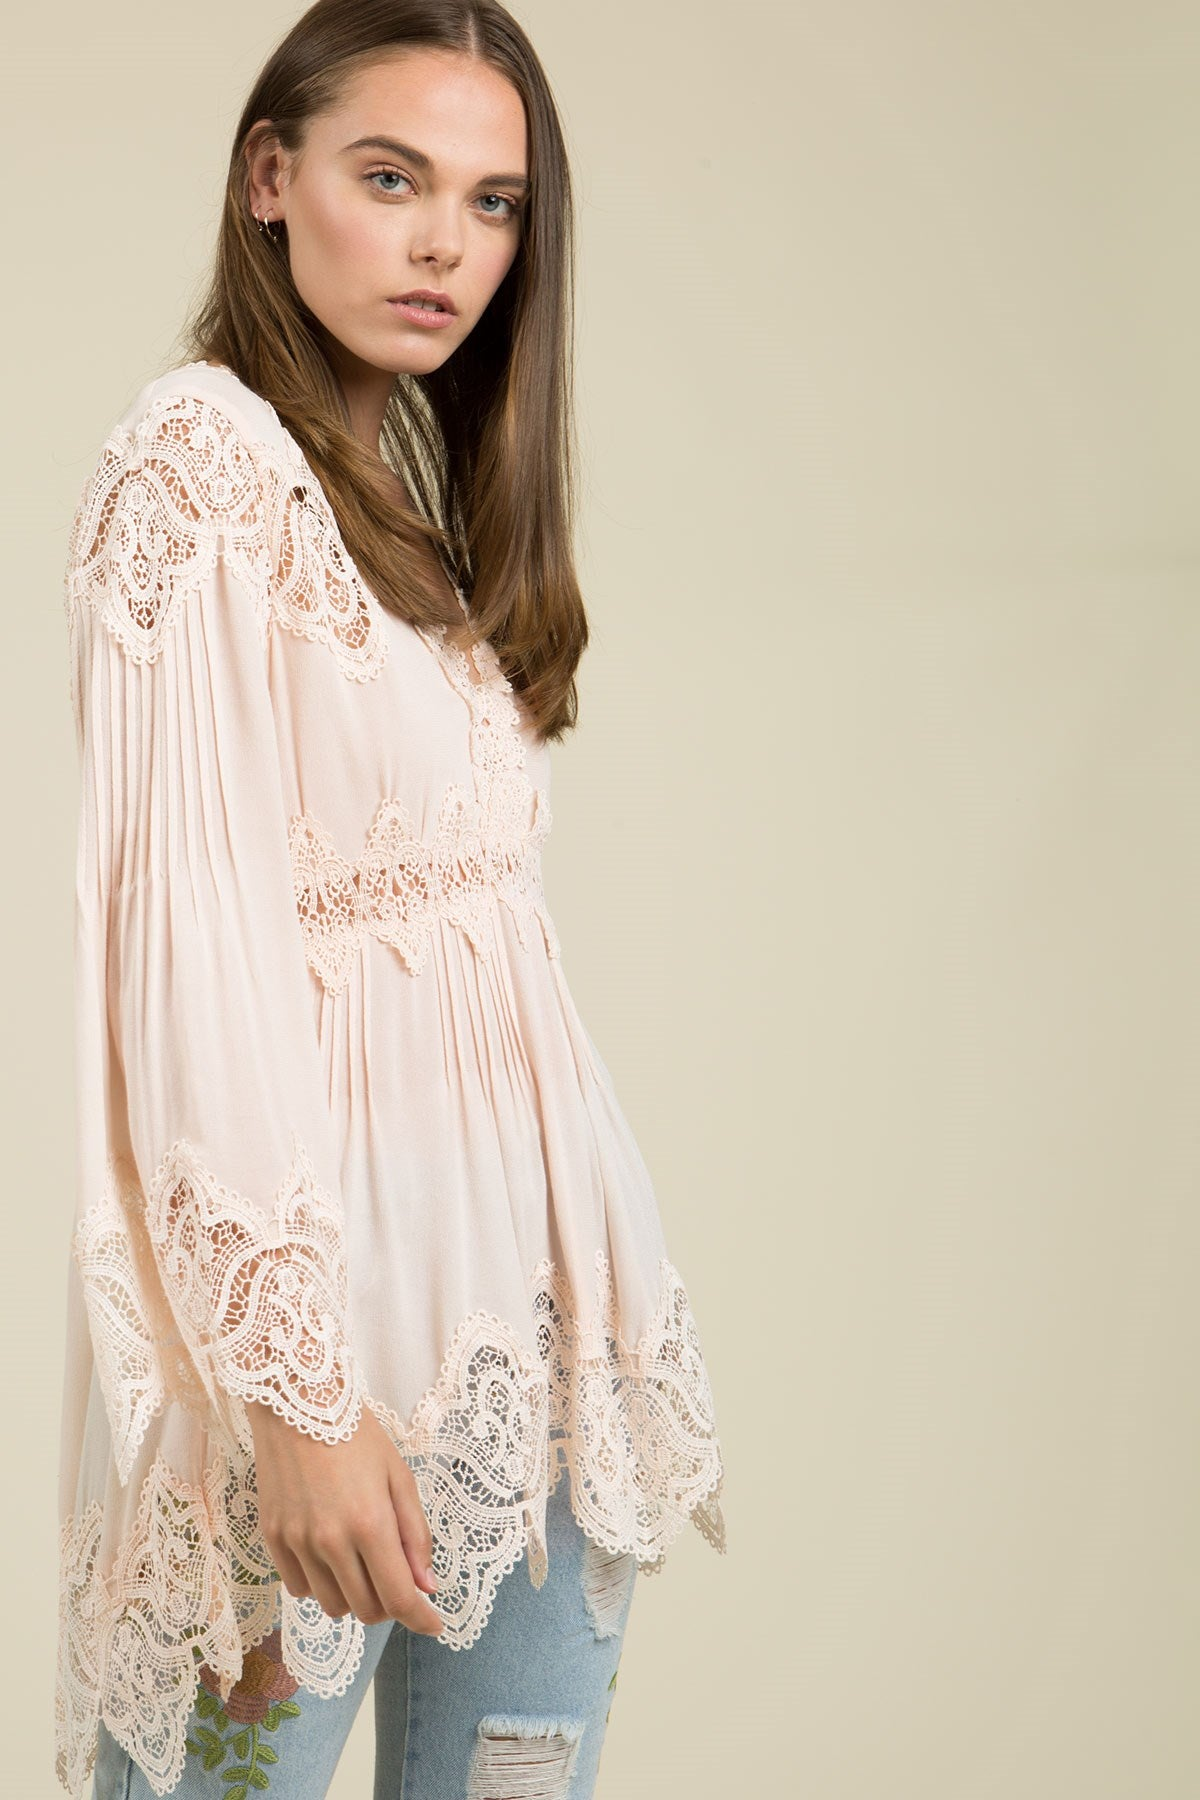 Side view young woman wearing pink empire waist lace trim tunic top